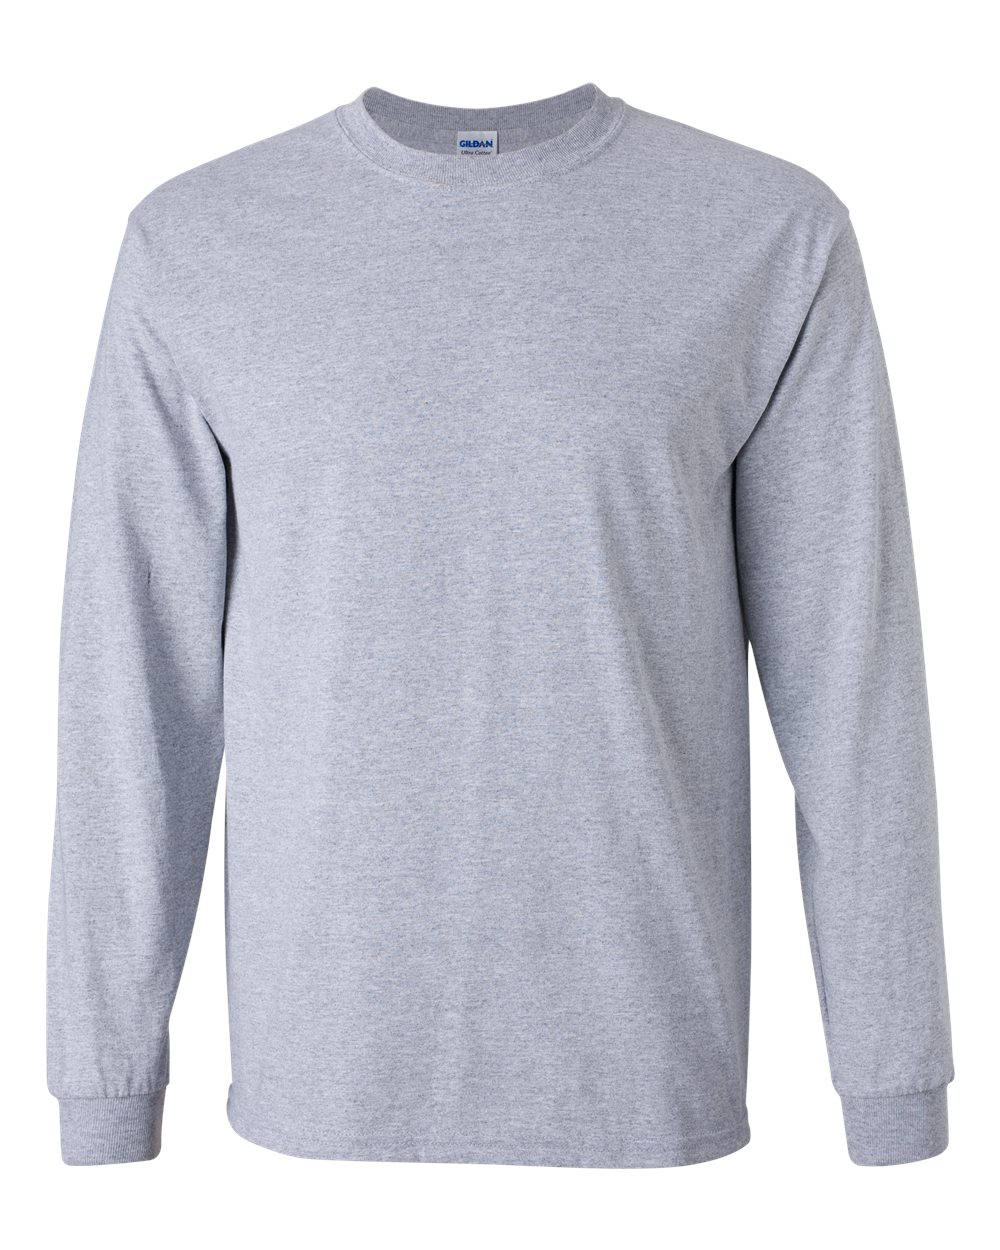 Gildan_2400_Sport_Grey_Front_High.jpg